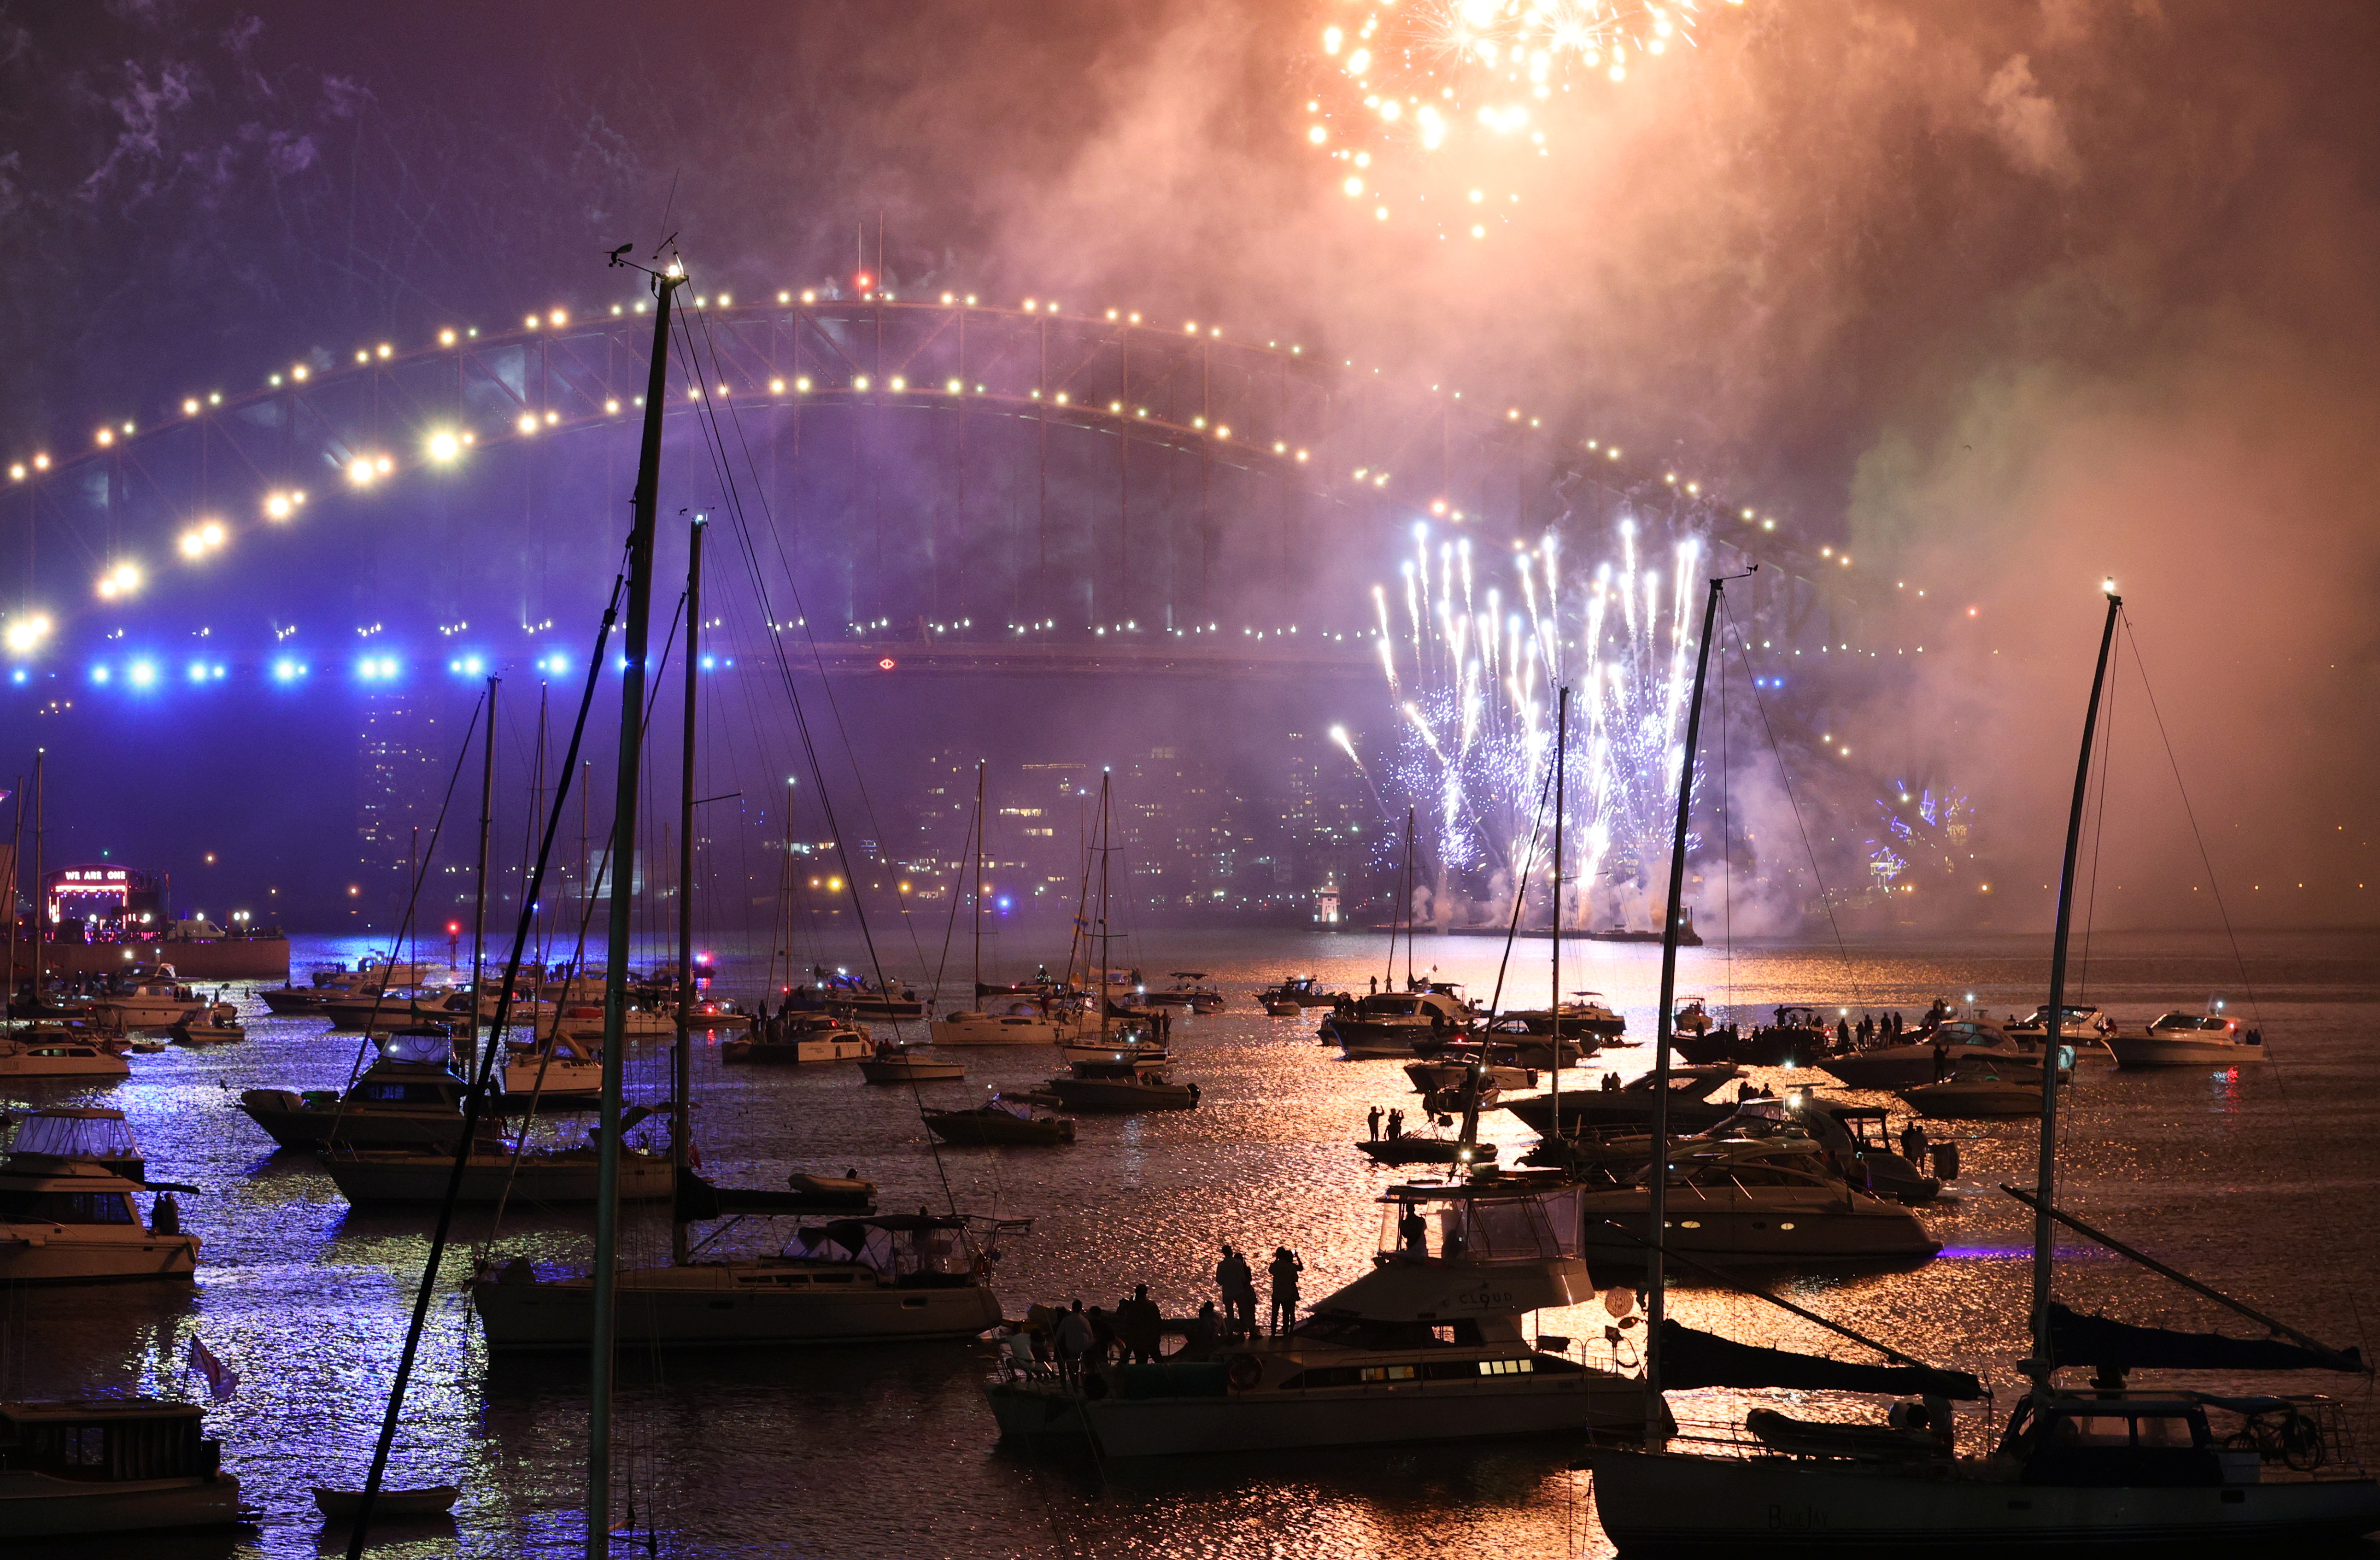 Fireworks explode over the boats and Sydney Harbour Bridge during downsized New Year's Eve celebrations due to an outbreak of the coronavirus disease (COVID-19) in Sydney, Australia, January 1, 2021. REUTERS/Loren Elliott